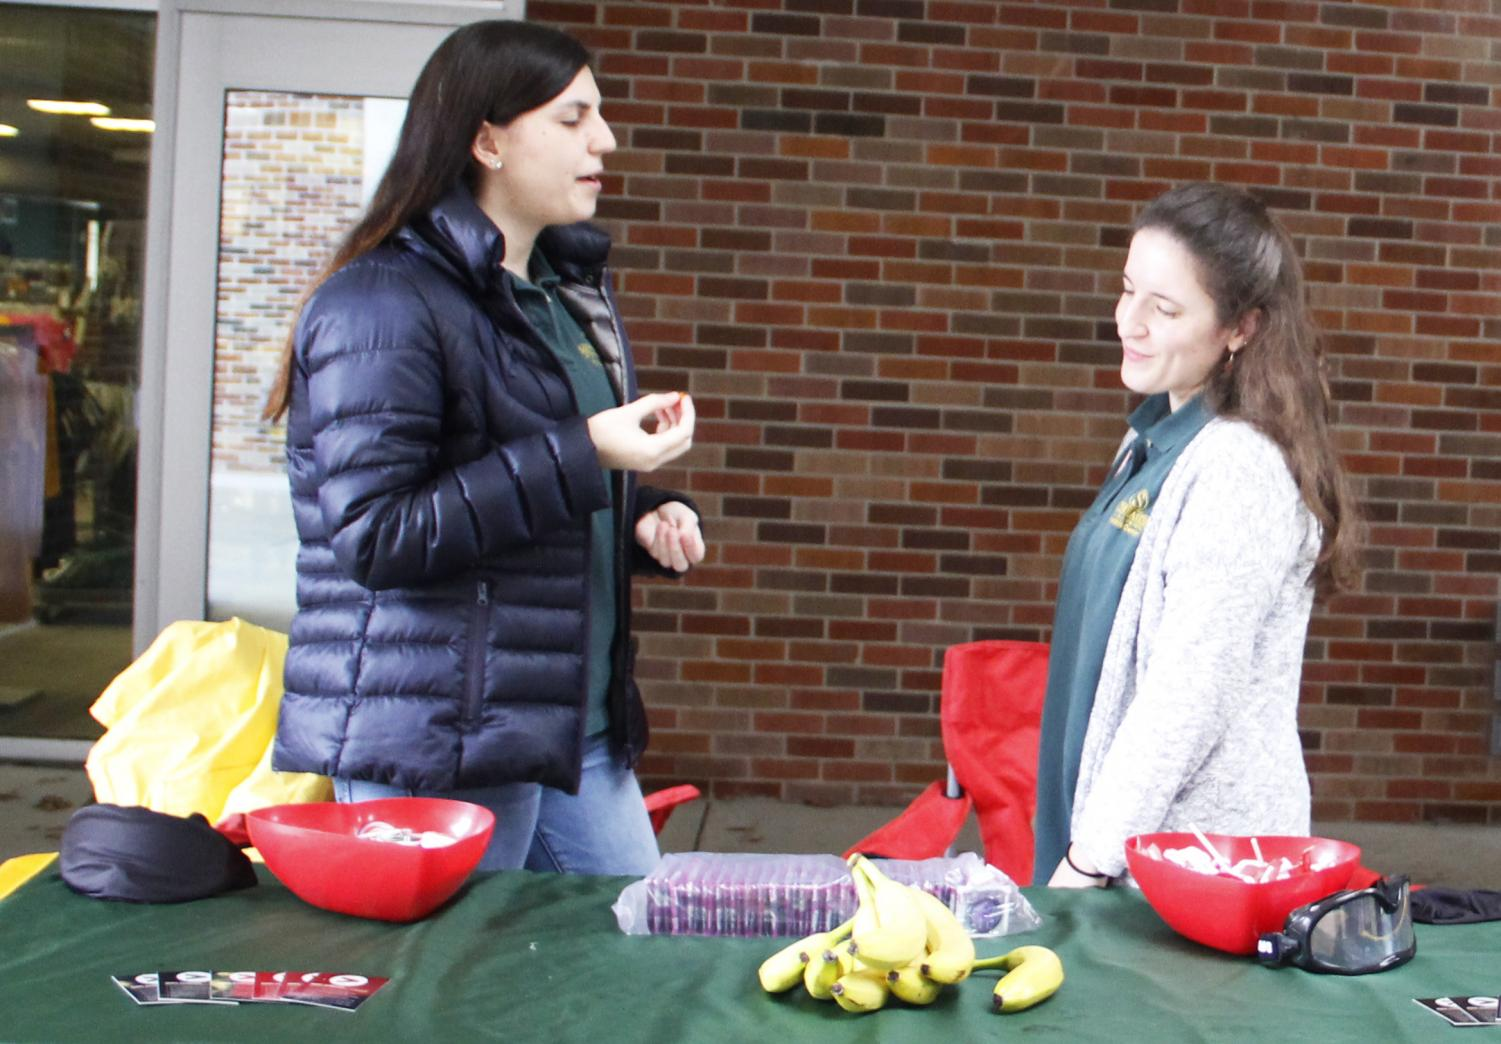 In recognition of National Condom Day, the University Health Center and Student Outreach and Advocacy Representatives set up a table in the Student Union Breezeway. Students could play a game and learn more about safe sex techniques.